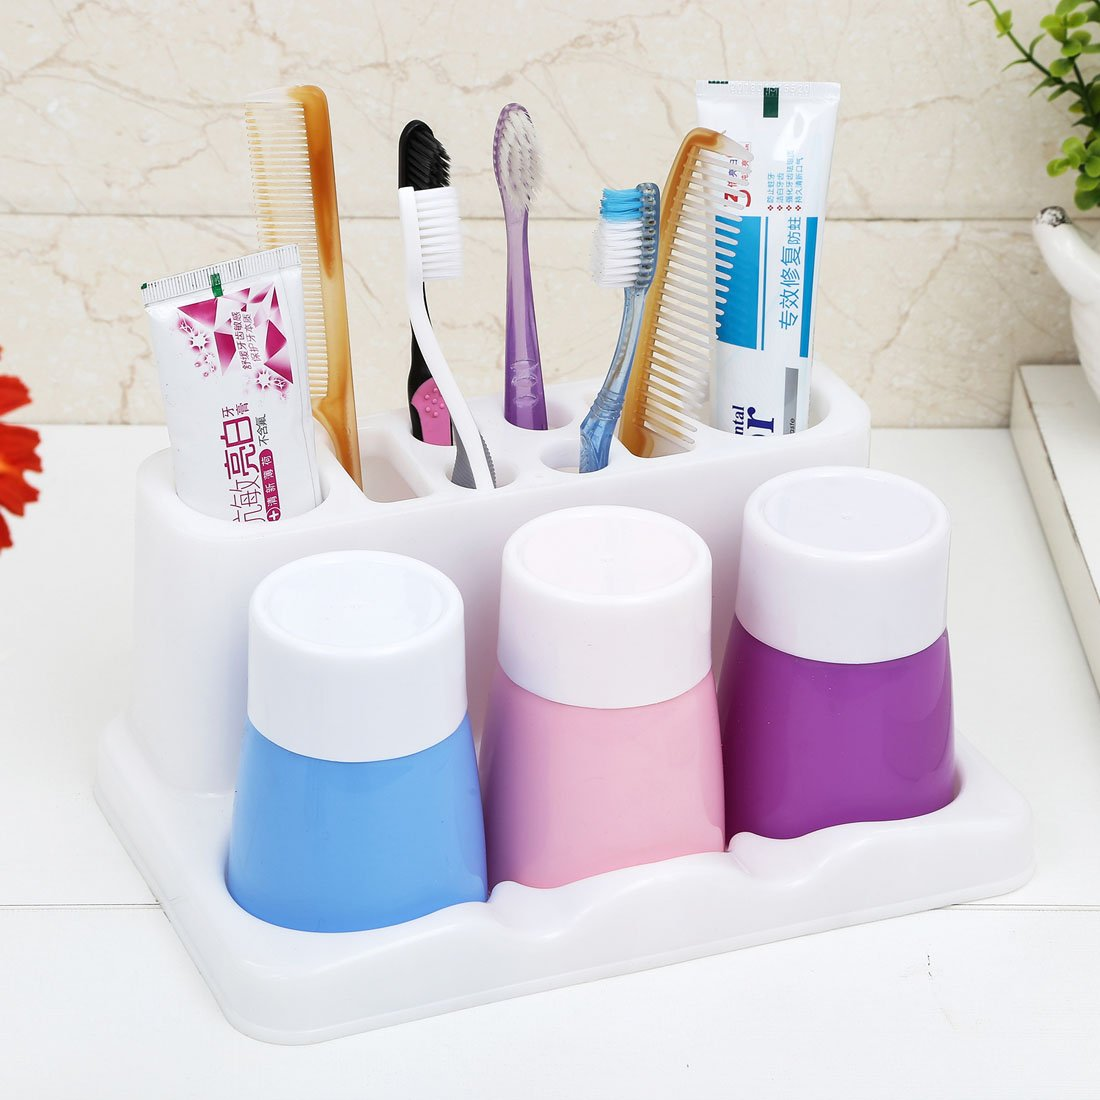 YIUHART Simple Toothbrush Holders for Bathroom Storage (White base+mixed color cups)